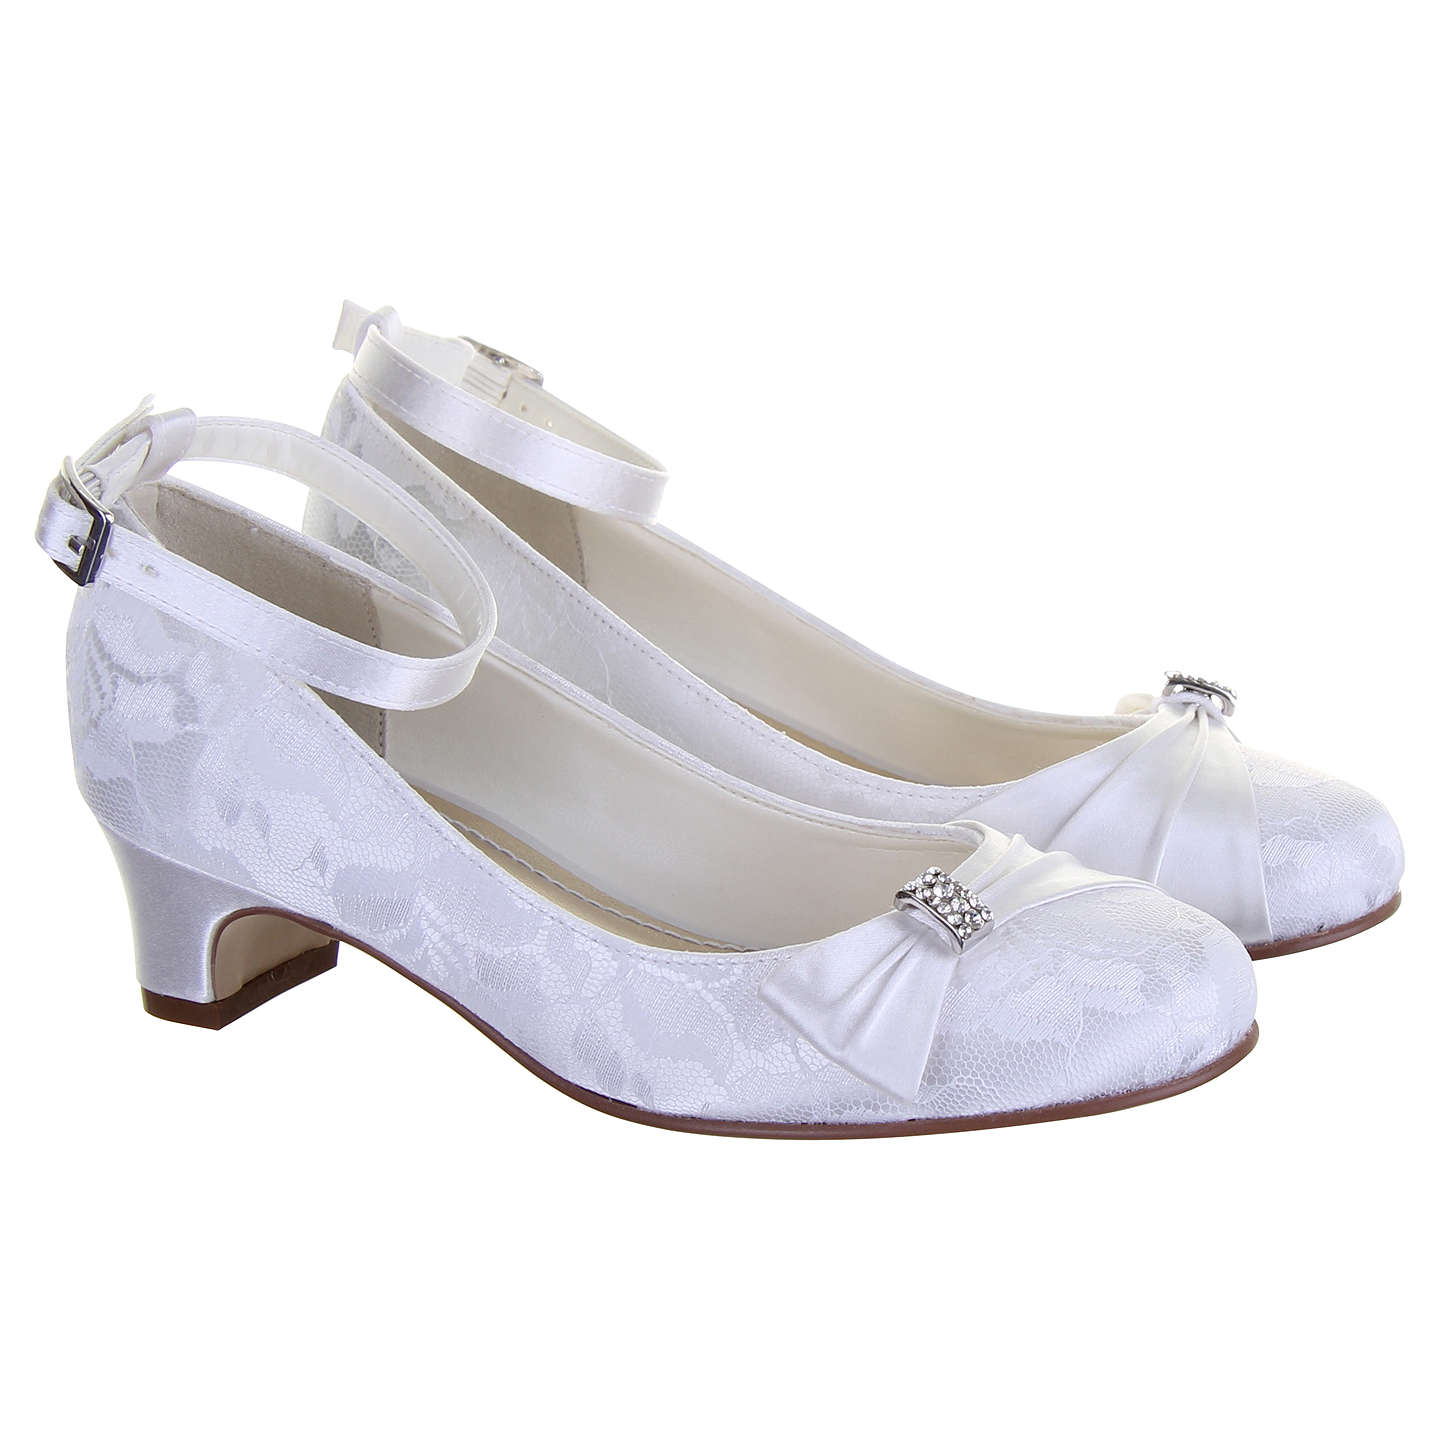 BuyRainbow Club Mint Bridesmaid Shoes, White Communion, 10 Jnr Online at johnlewis.com